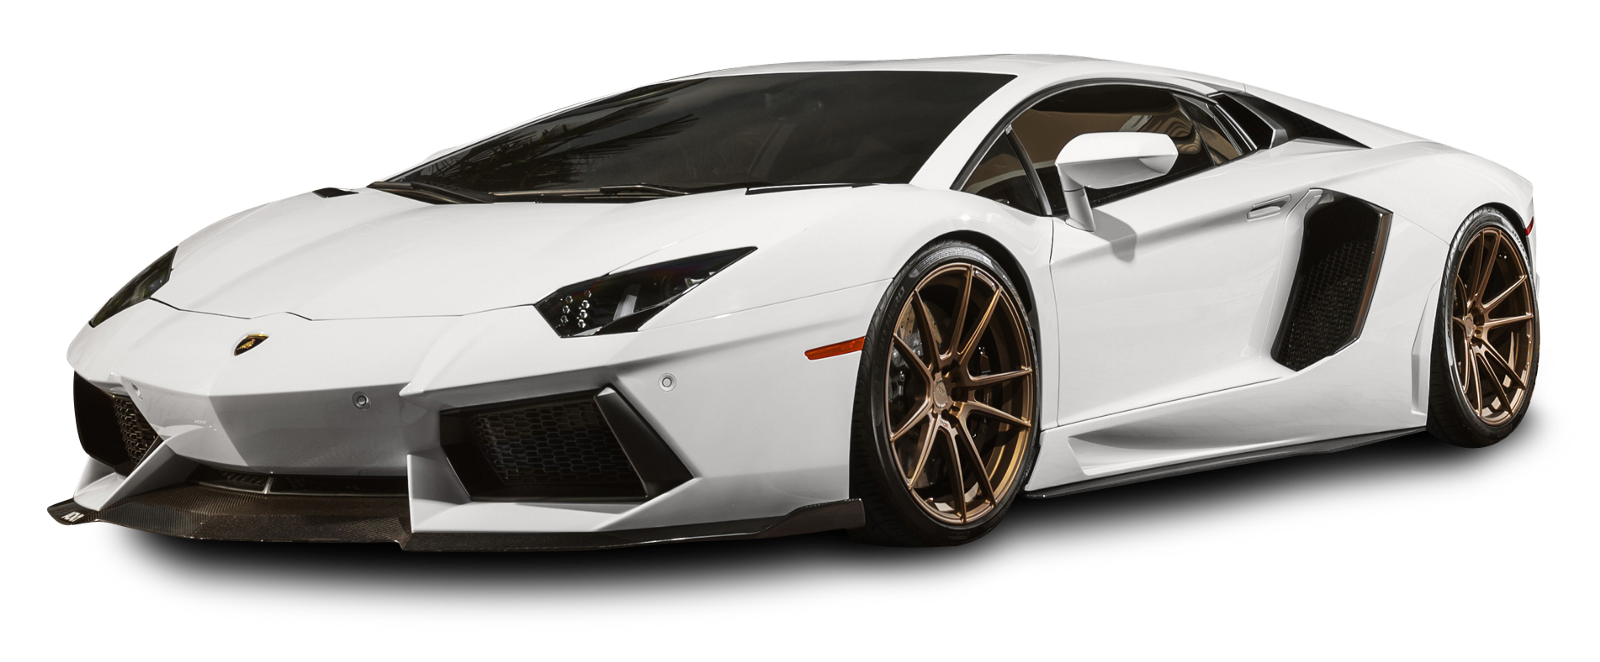 Top 4 Lamborghini Gallardo Models Denis Lilleus Medium